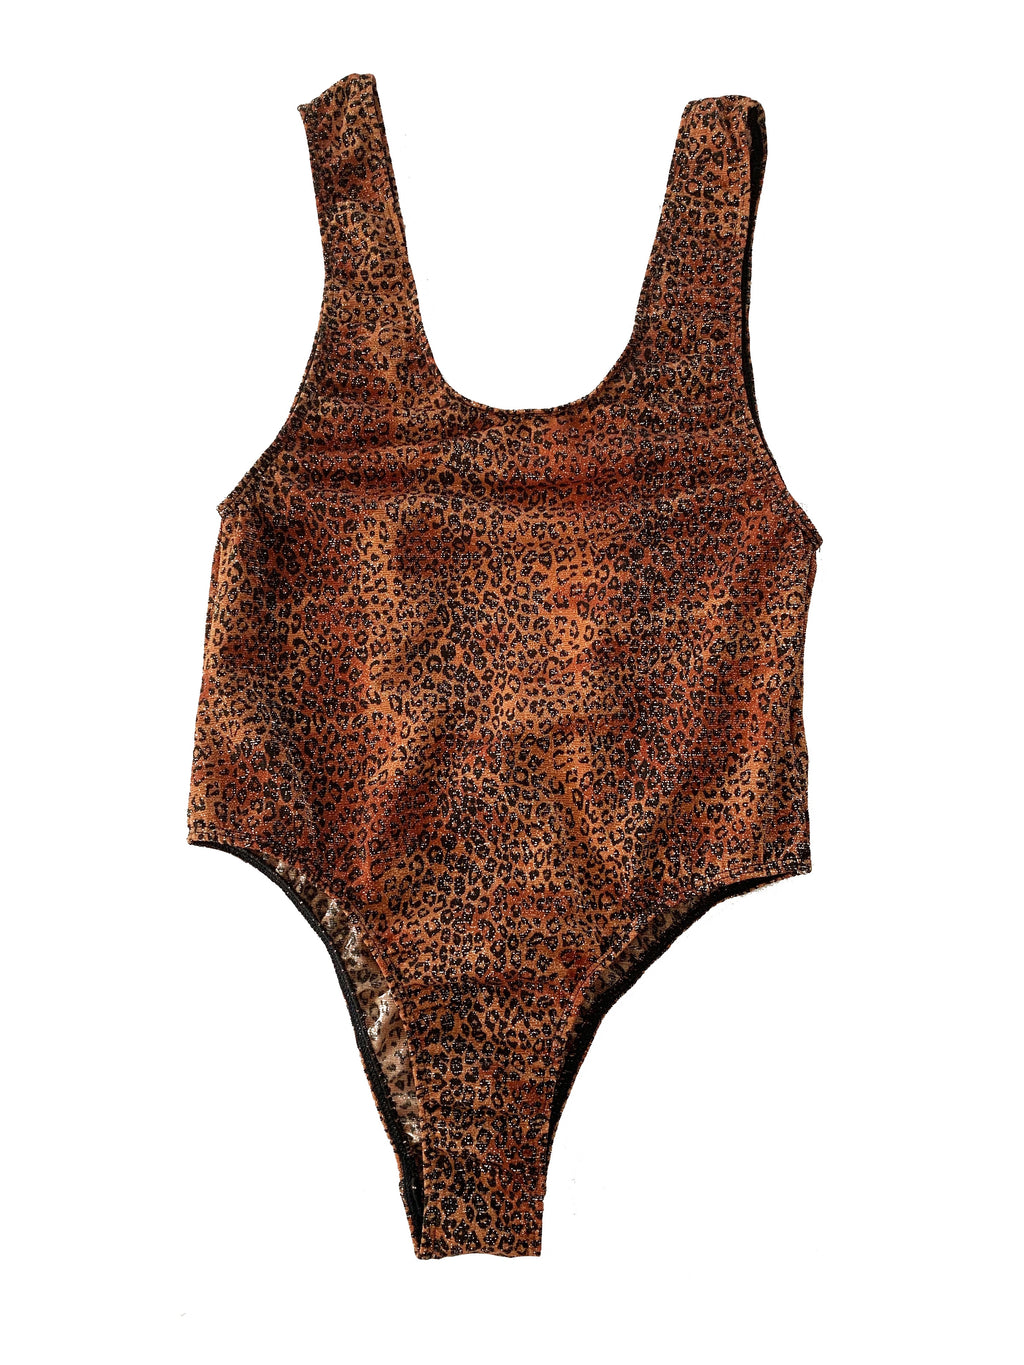 THE NAKED LEOPARD BODYSUIT